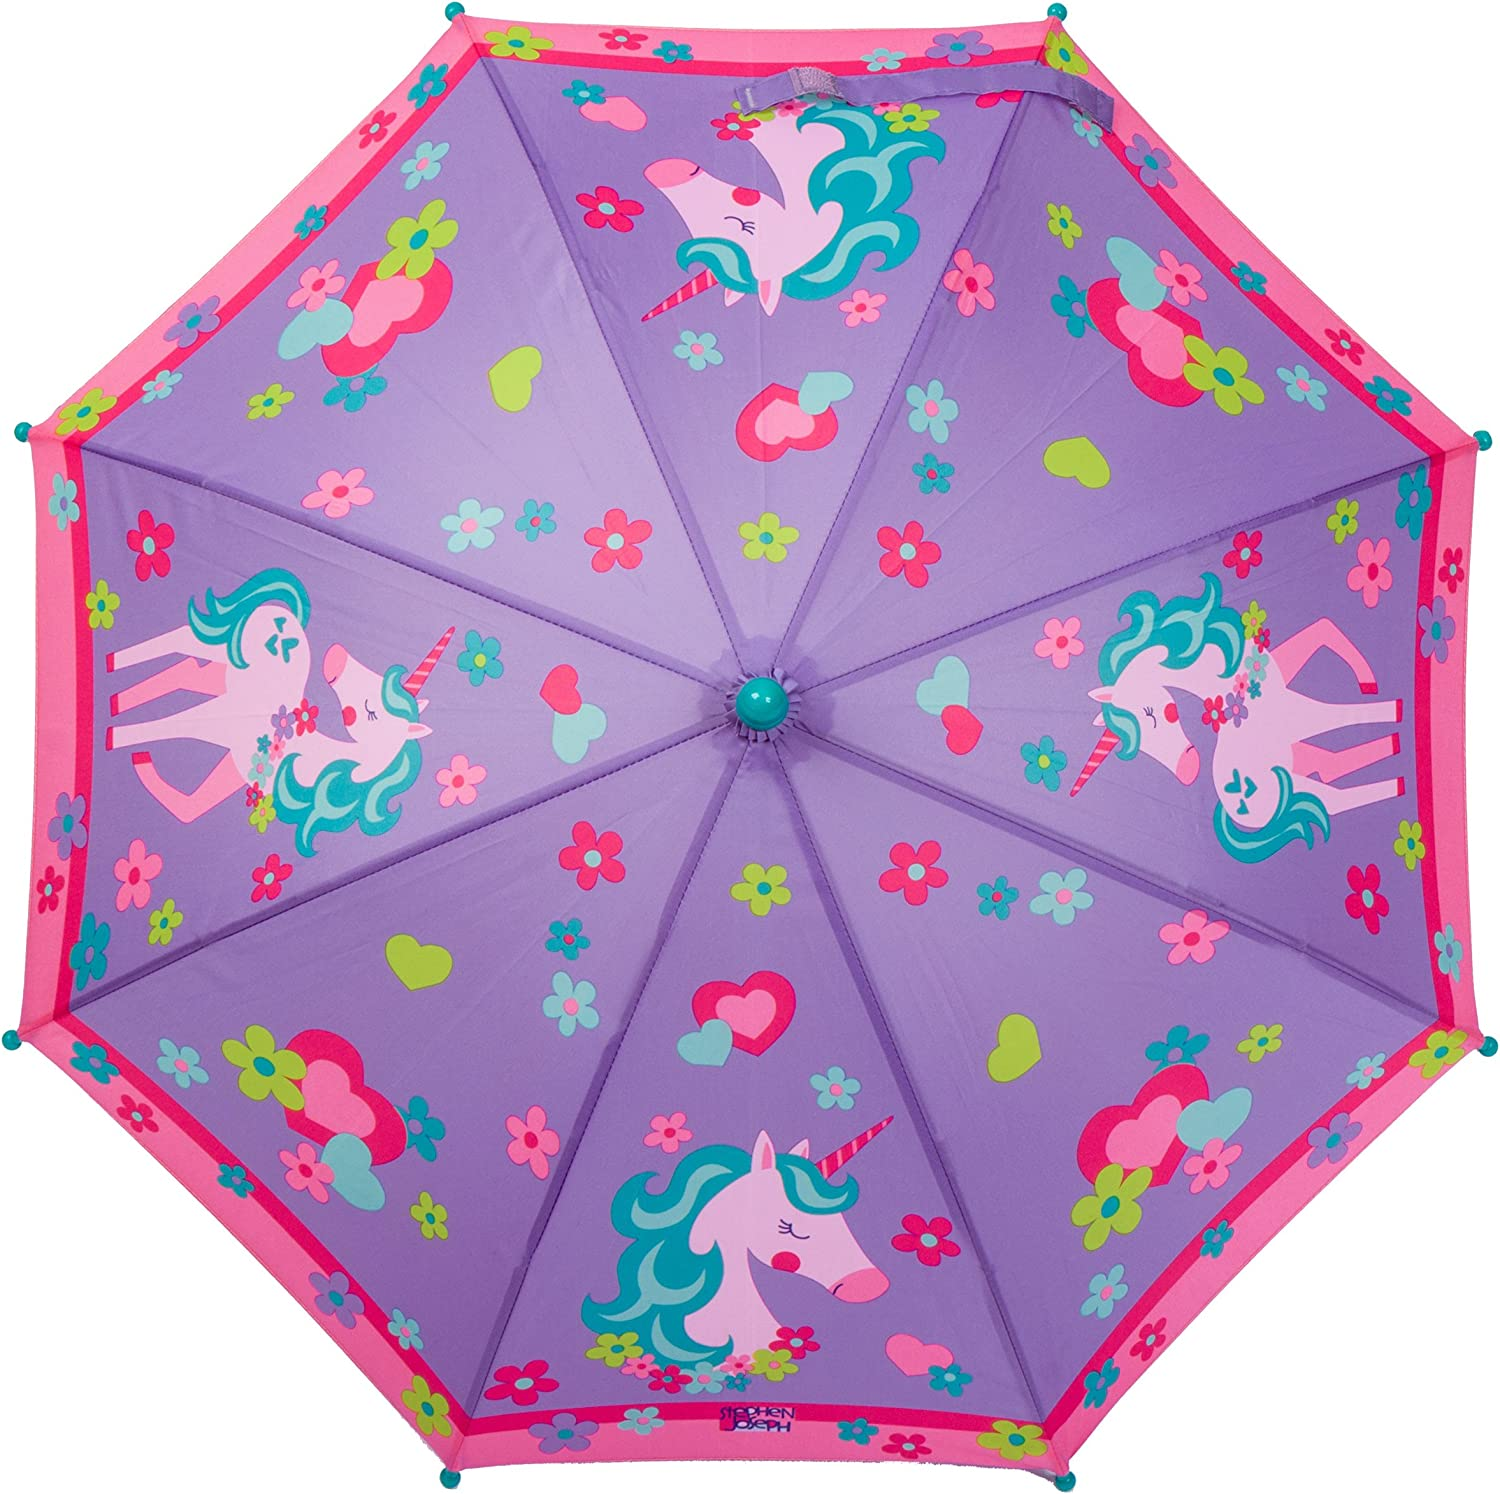 Unicorn,One Size Stephen Joseph Umbrella